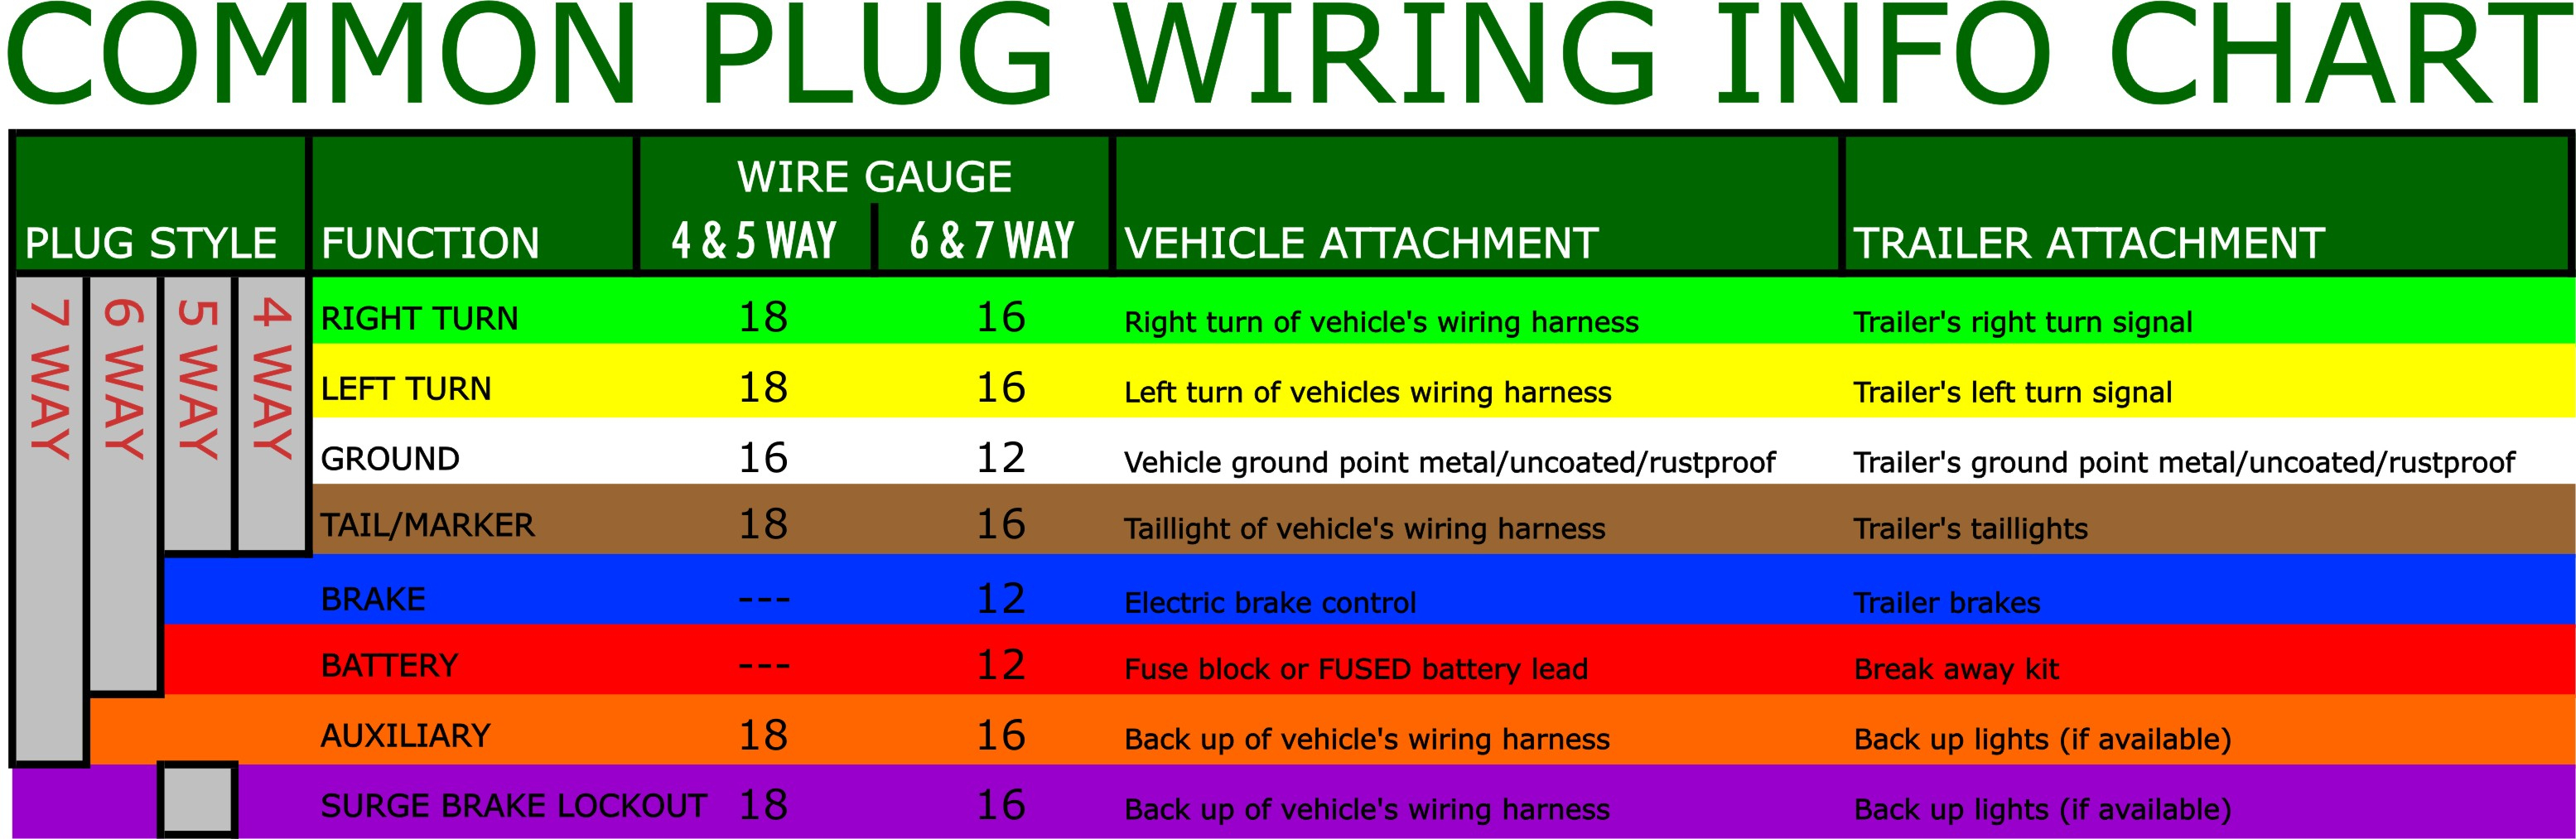 What Are The Most Common Trailer Plugs? - 2017 Trailer Wiring Diagram